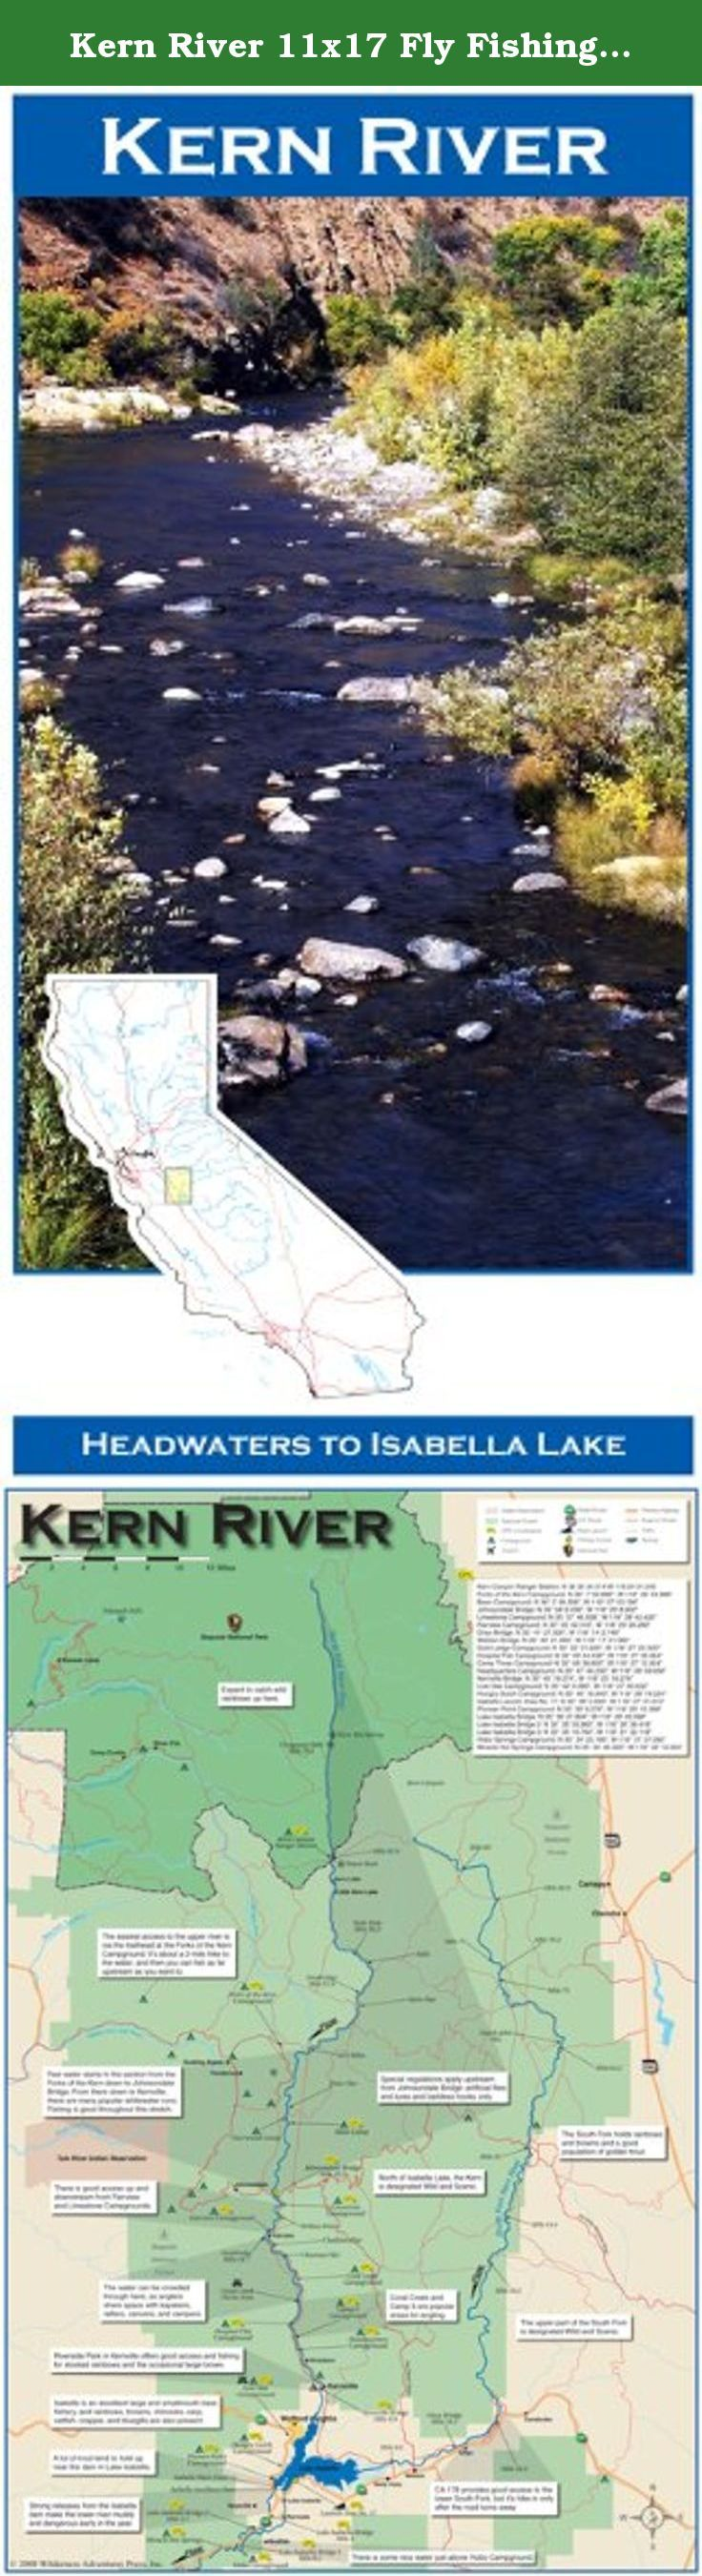 California Map Sequoia National Park%0A Map of the Kern River from headwaters of North Fork and South Fork in Sequoia  National Forest and Sequoia National Park to Lake Isabella